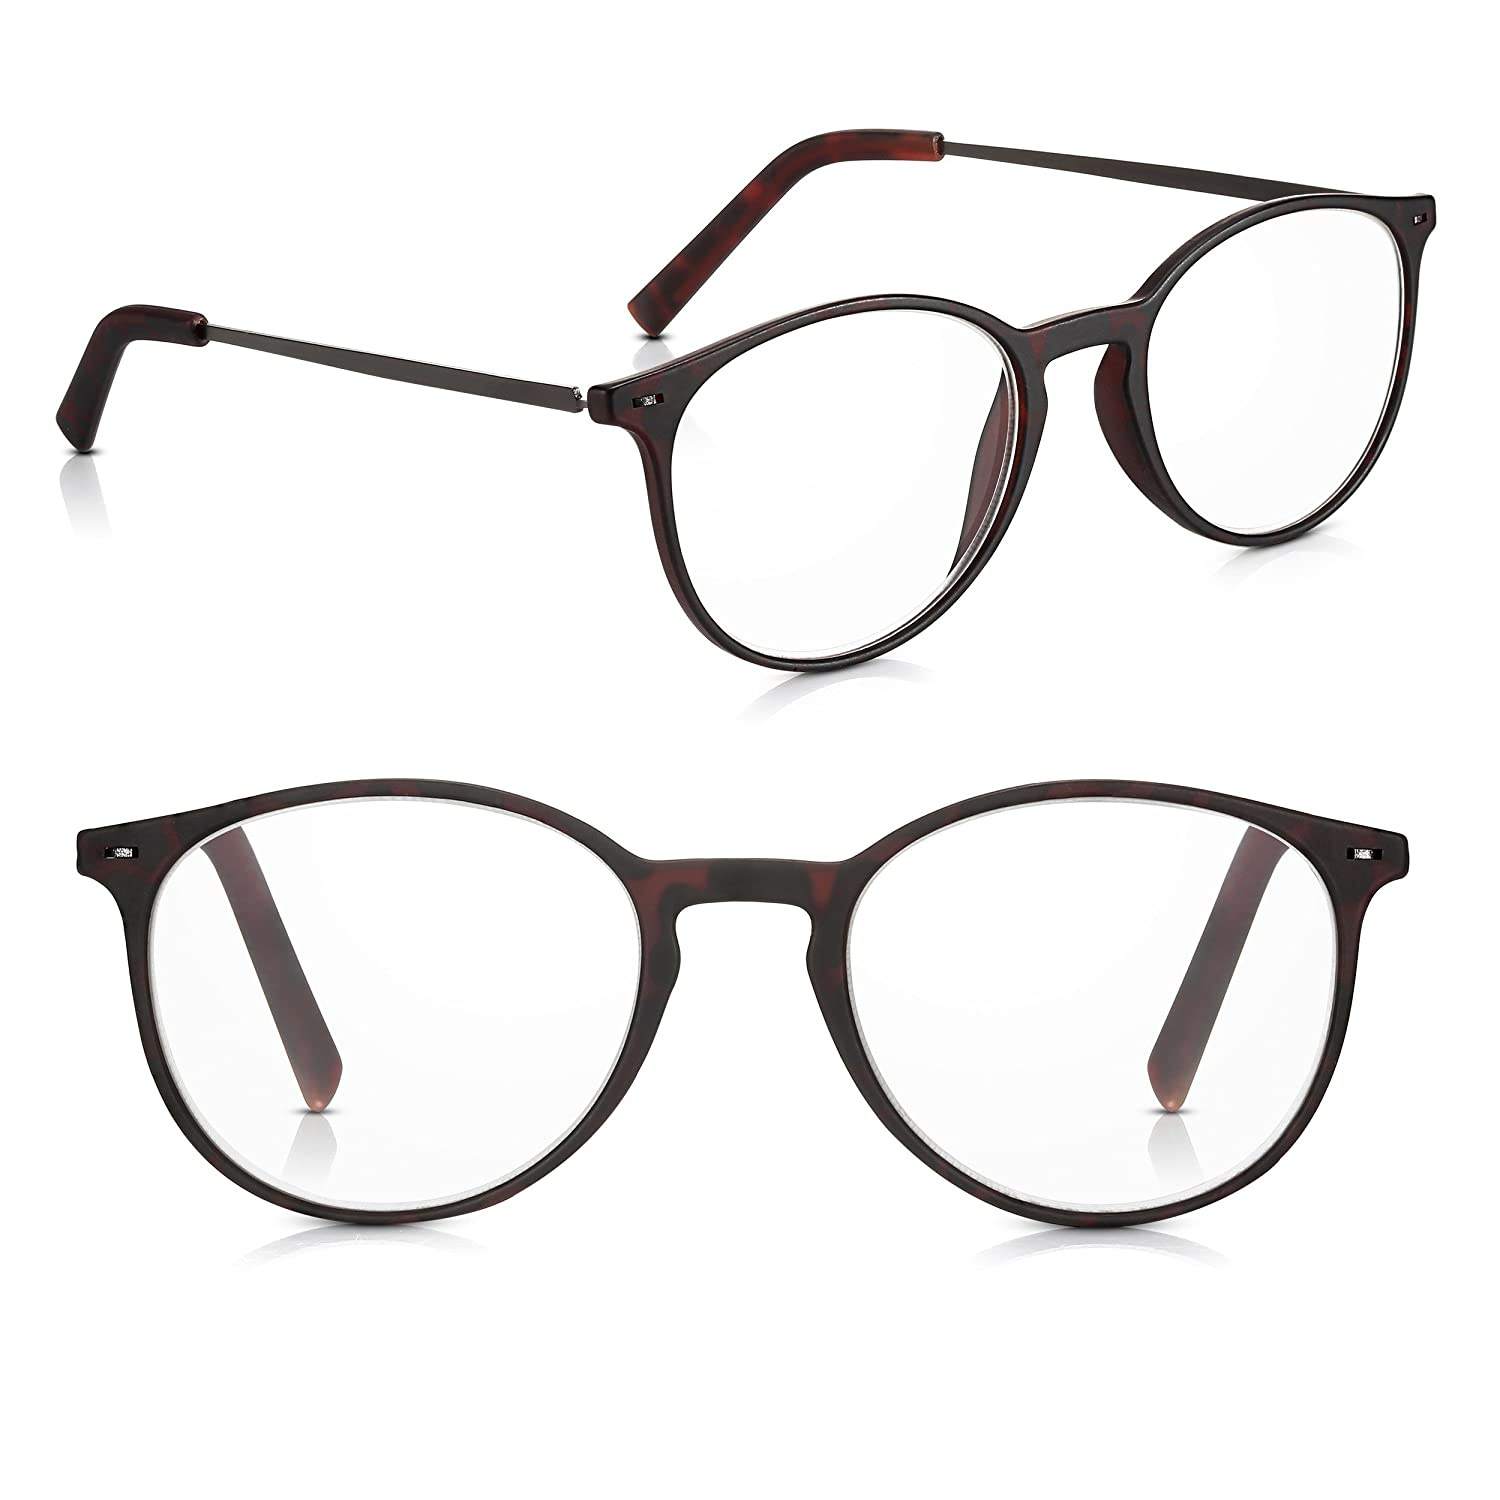 ab5700f75f Read Optics 2 Pack +2.00 Mens Womens Non-Prescription Reading Glasses   Classy Spectacles in Dark Polycarbonate Round Frames + Stylish Metal Arms.  Durable